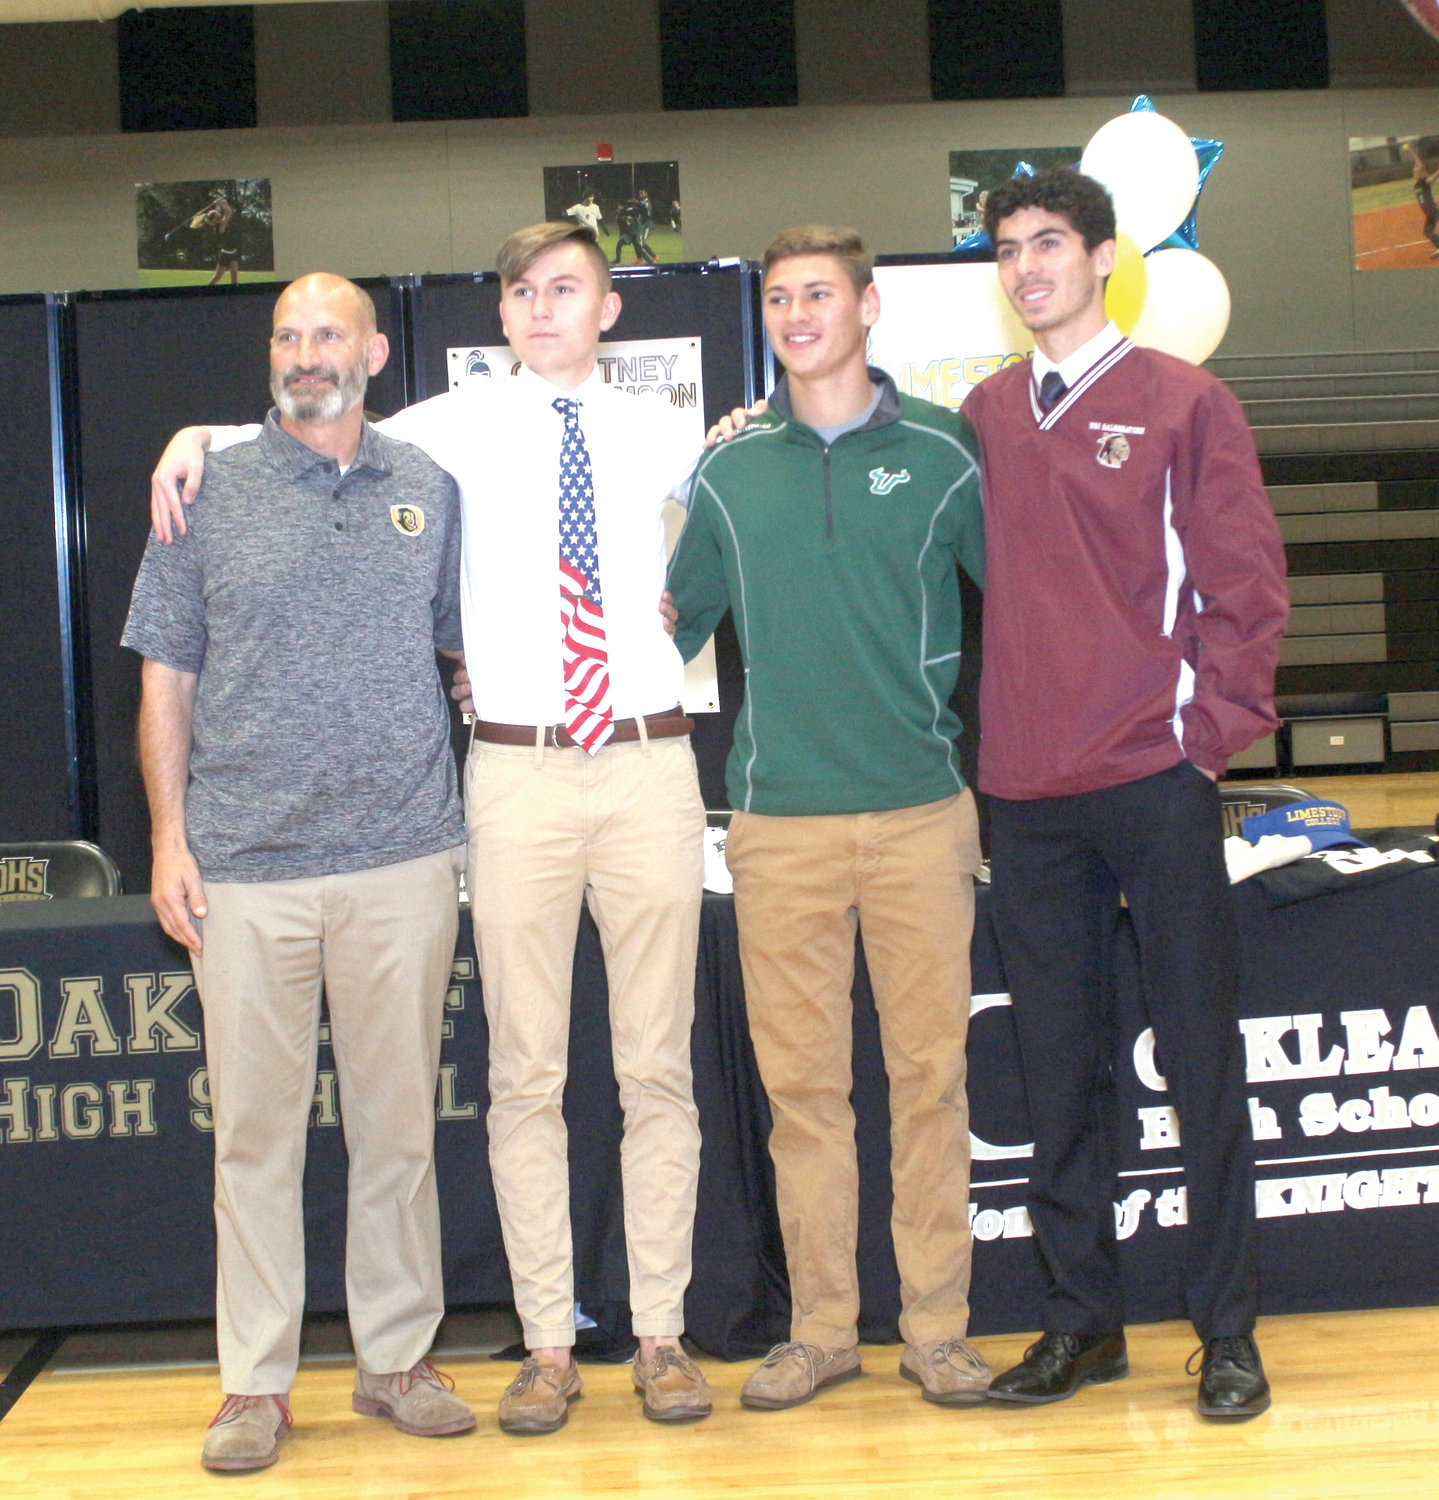 Oakleaf High soccer coach Fred Hulett, left, stands with three of his athletes; l-r, Tim Morgan, Braden Ammon and Vito Fasulo prior to the trio signing to play college soccer.  Morgan will play at Brewton-Parker in Georgia. Ammon will play at University of South Florida. Fasulo will play at the University of South Carolina-Salkehatchie. Not pictured was Jared McGregor who will play at LaGrange College.